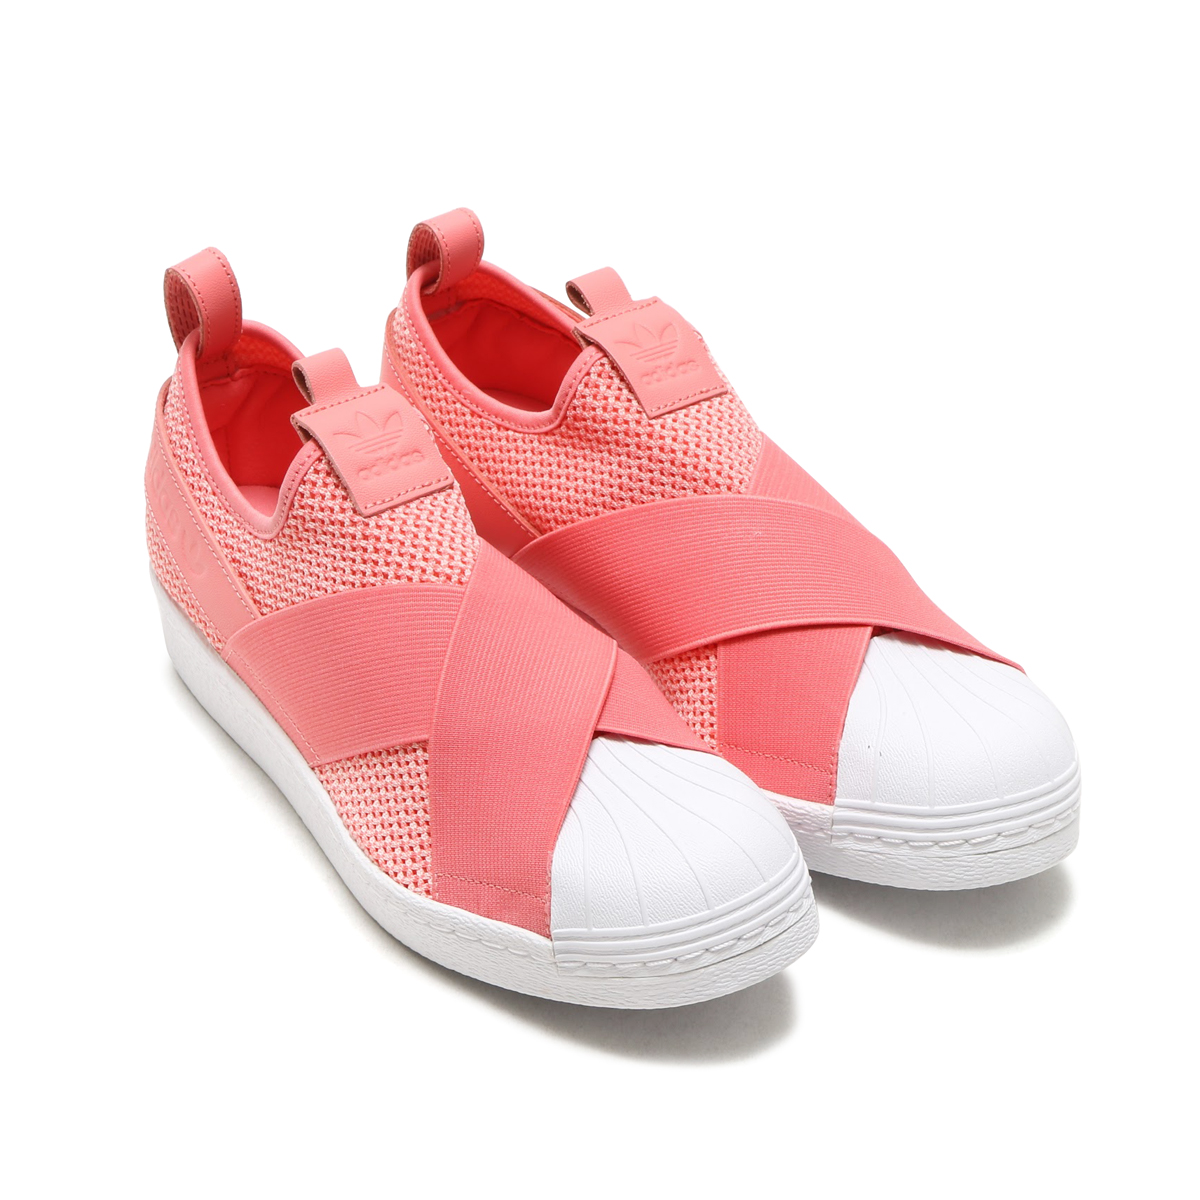 sports shoes b0d2d d6e7c adidas Originals SUPERSTAR SlipOn W (Adidas originals superstar slip-on)  Tactile Rose Tactile Rose Running White 17FW-I